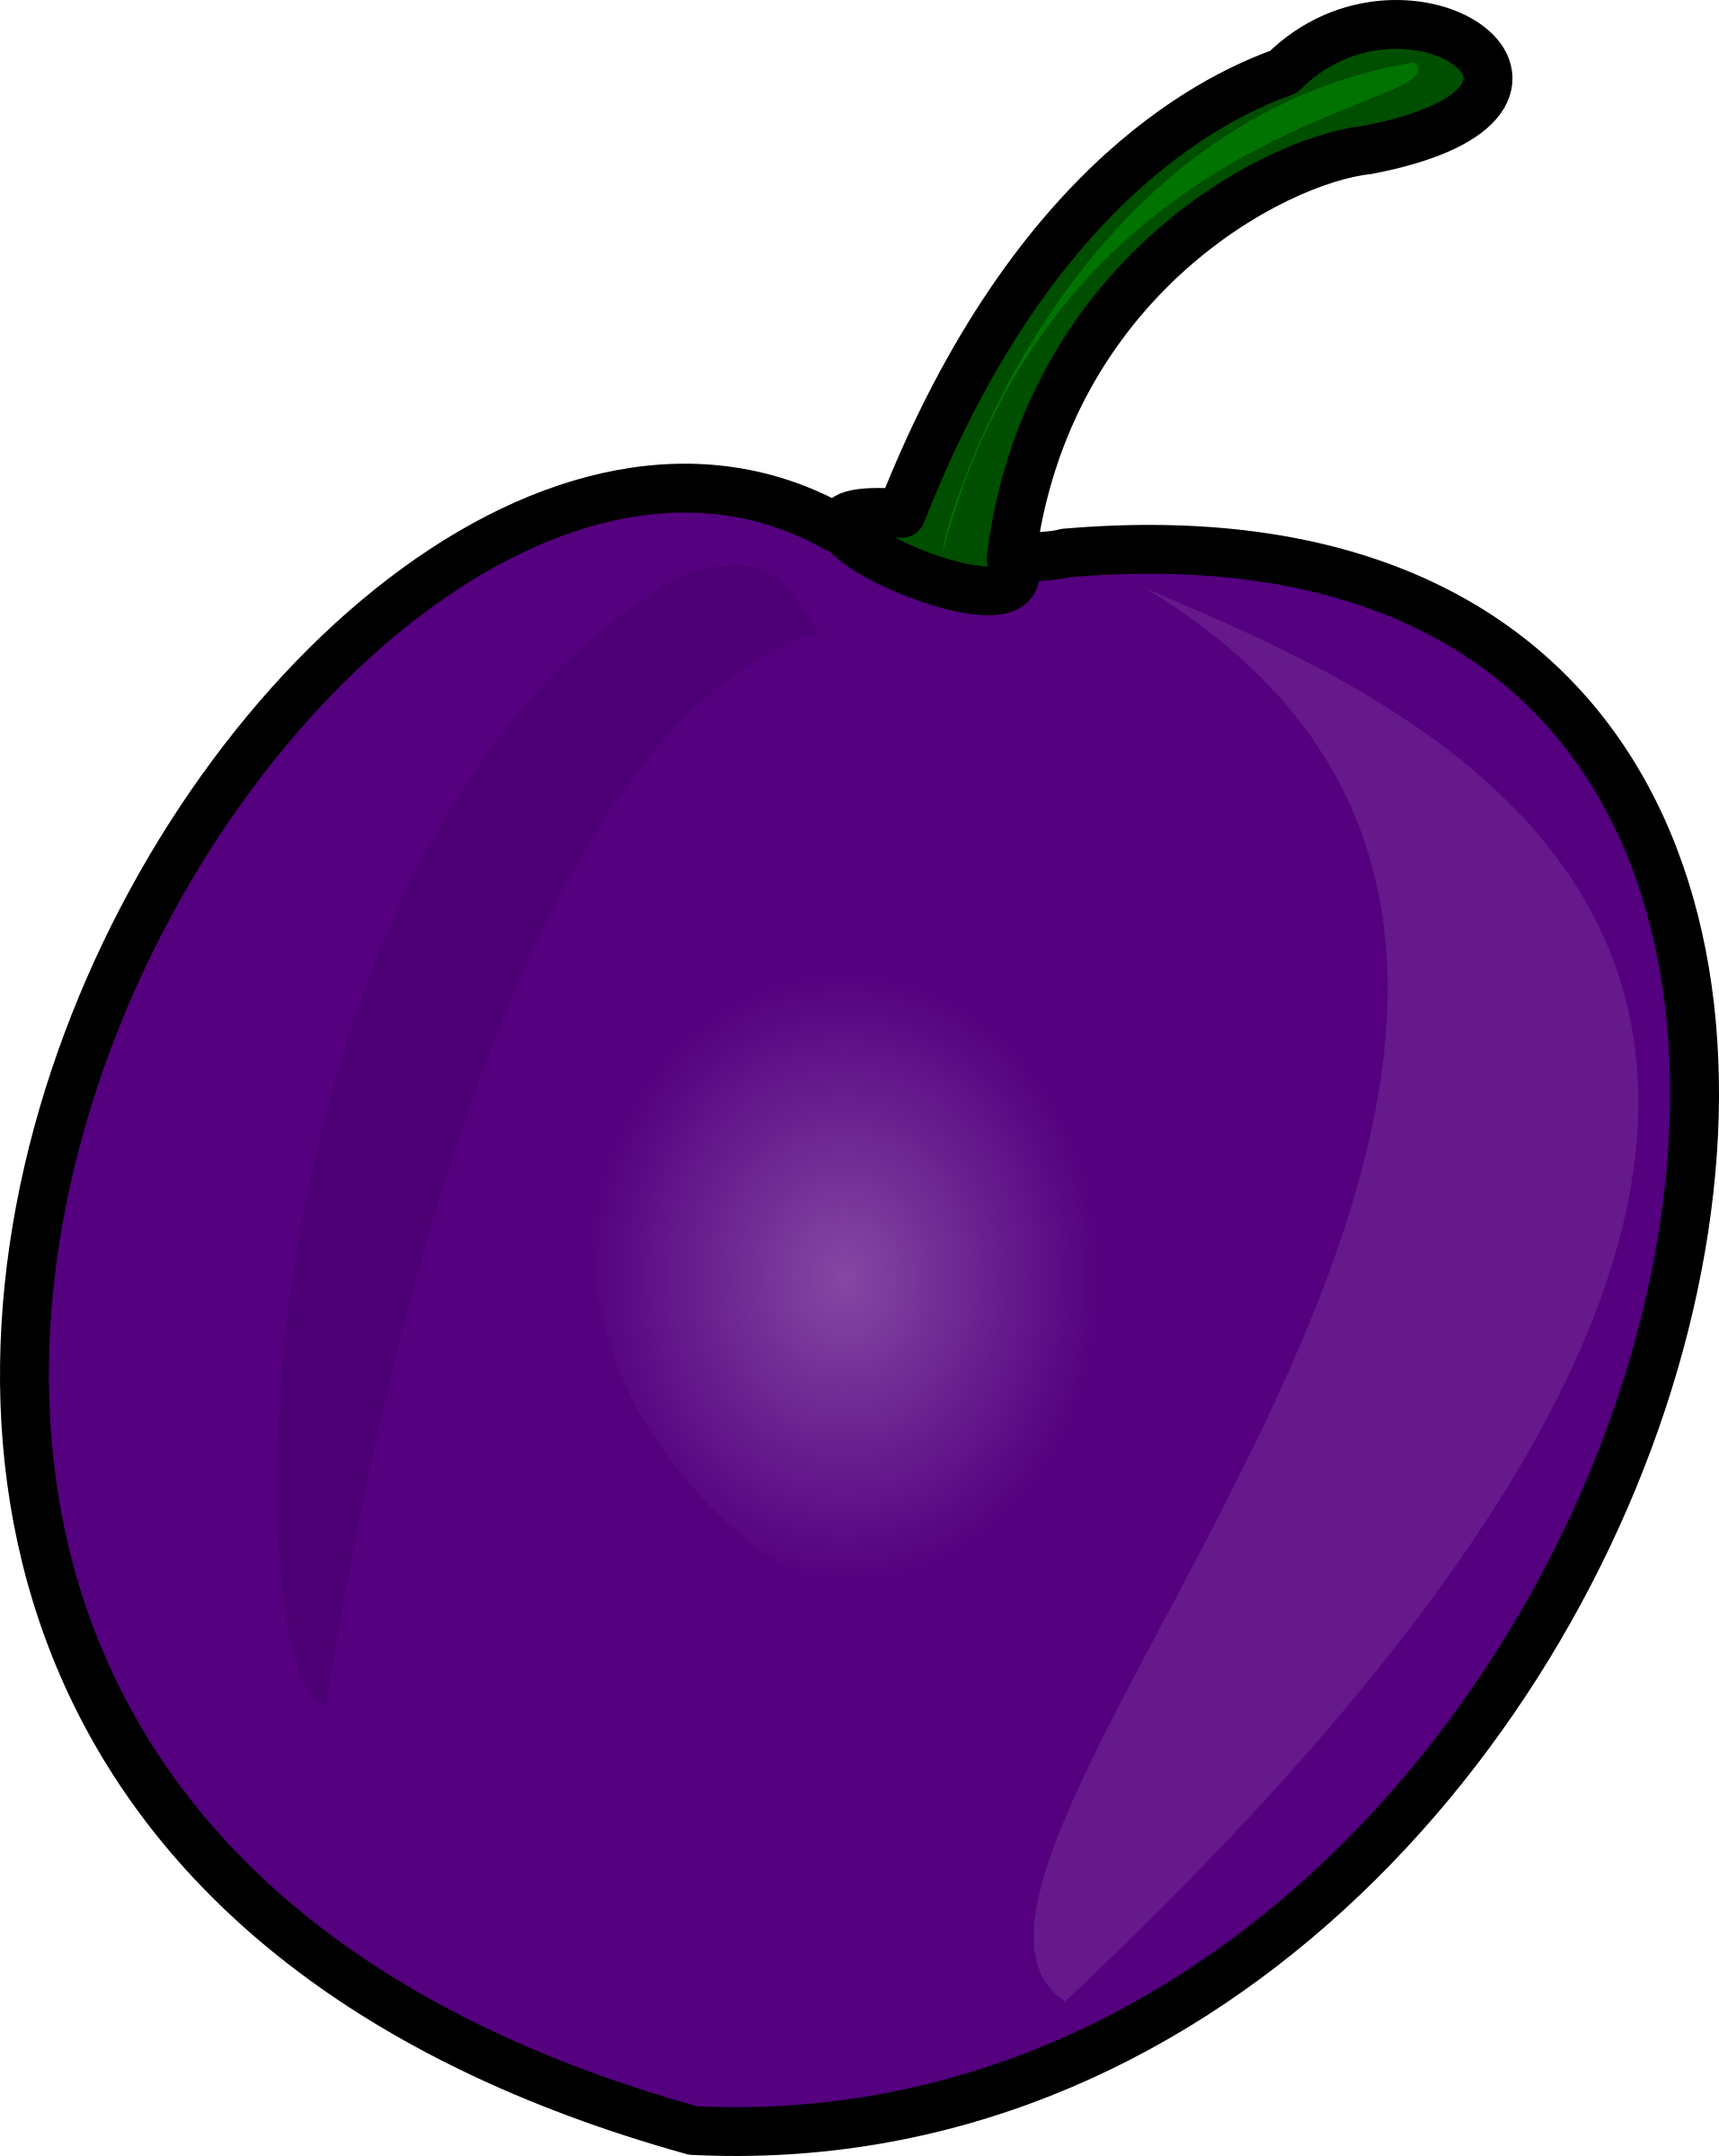 Plum clipart real. Big image png